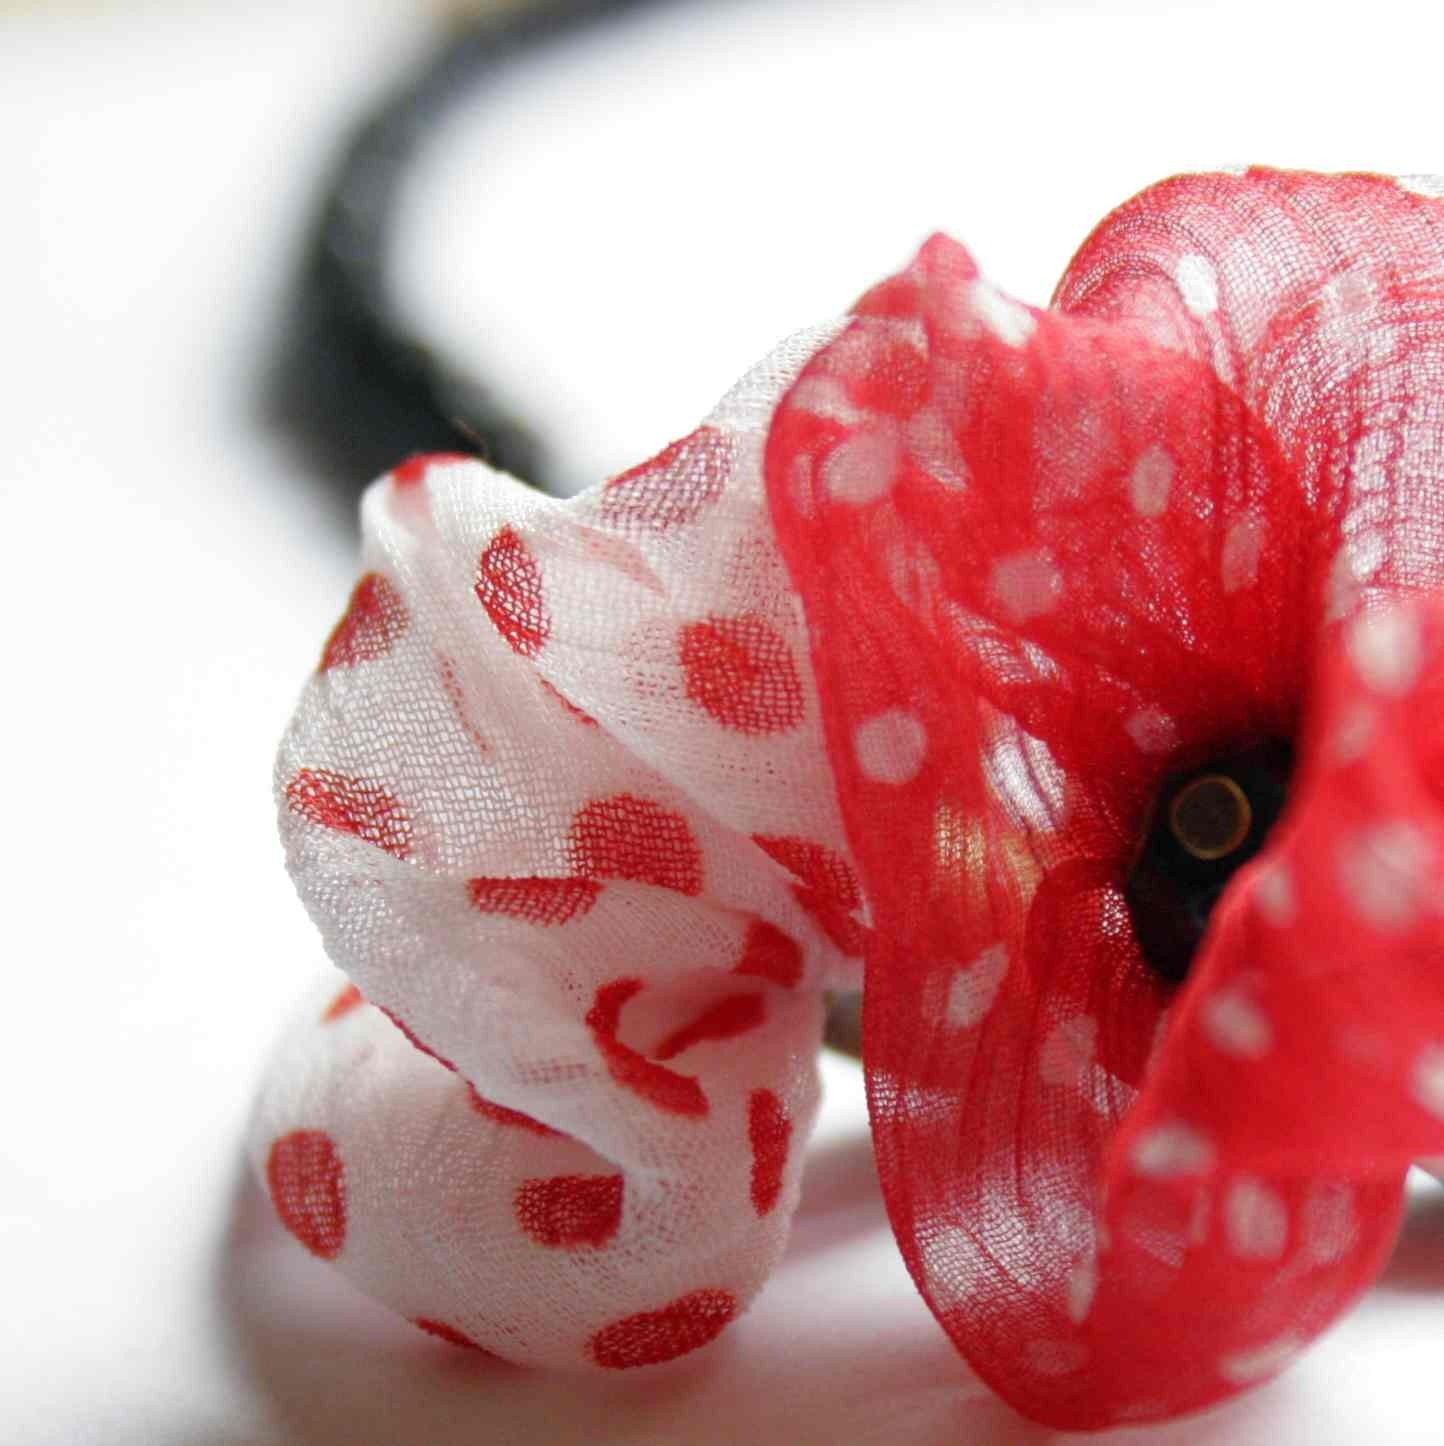 Poppy Girl - poppy flower necklace made of silk and faceted glass beads